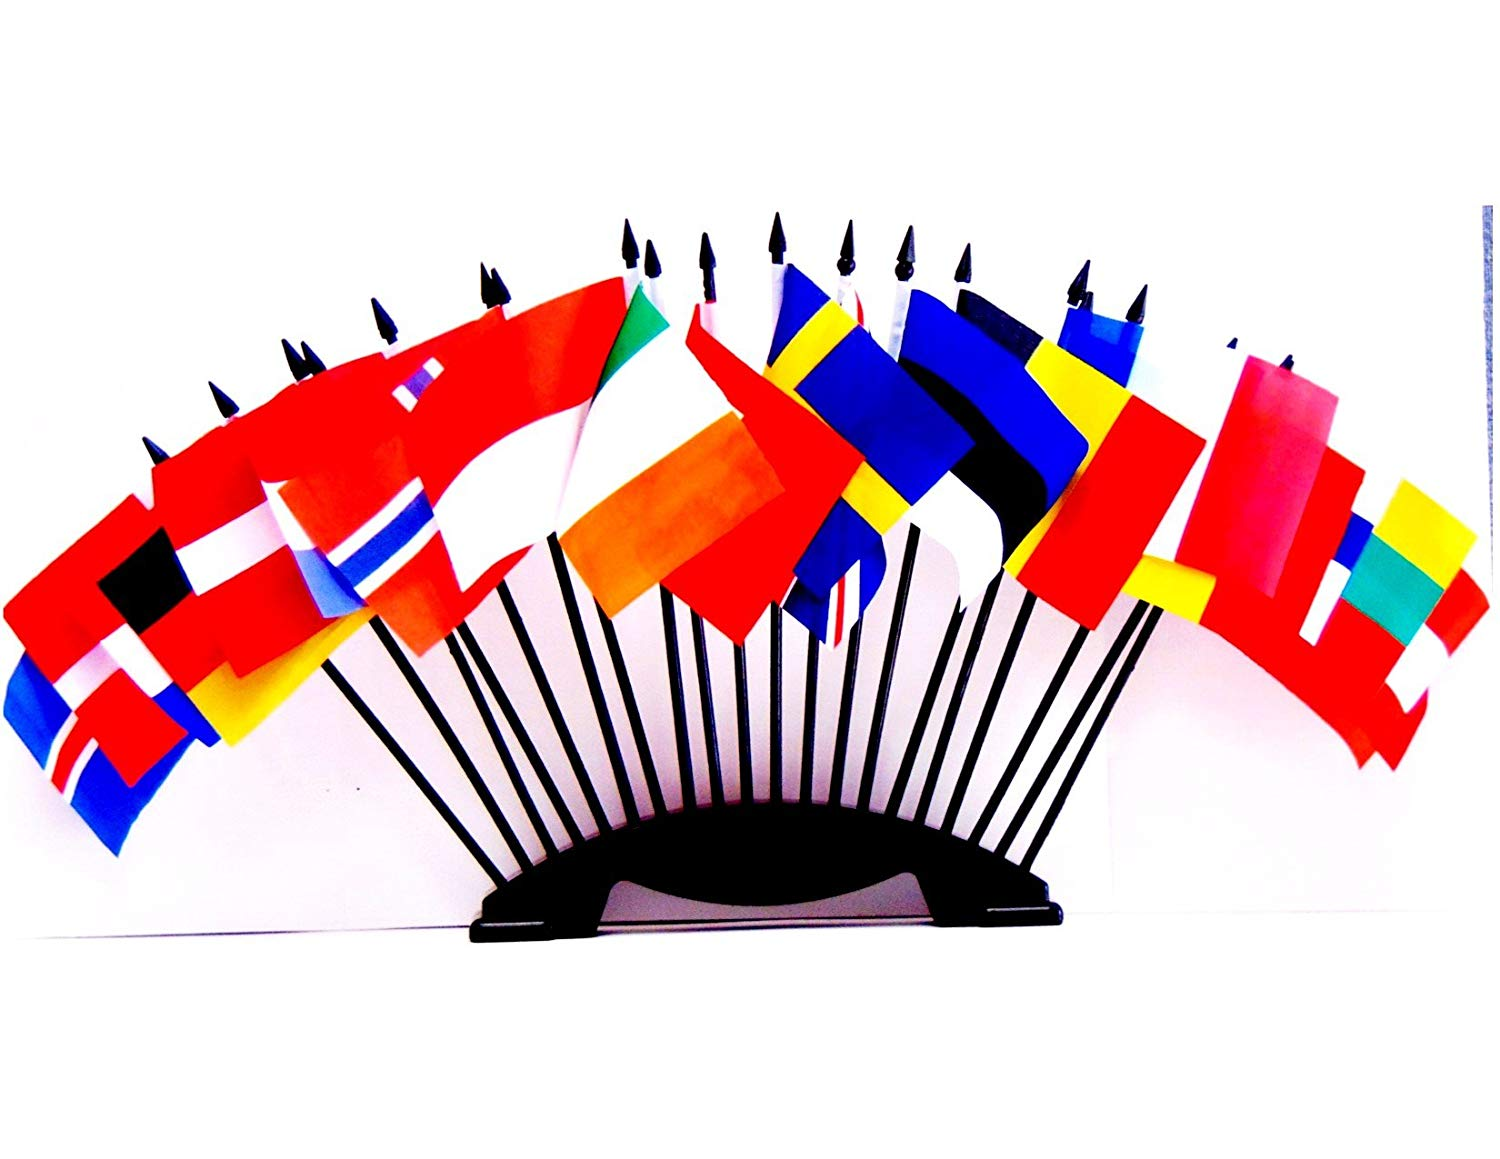 """NORTHWEST EUROPE WORLD FLAG SET with BASE--20 Polyester 4""""x6"""" Flags, One Flag for Each Country in Northwest Europe, 4x6 Miniature Desk & Table Flags, Small Mini Stick Flags"""